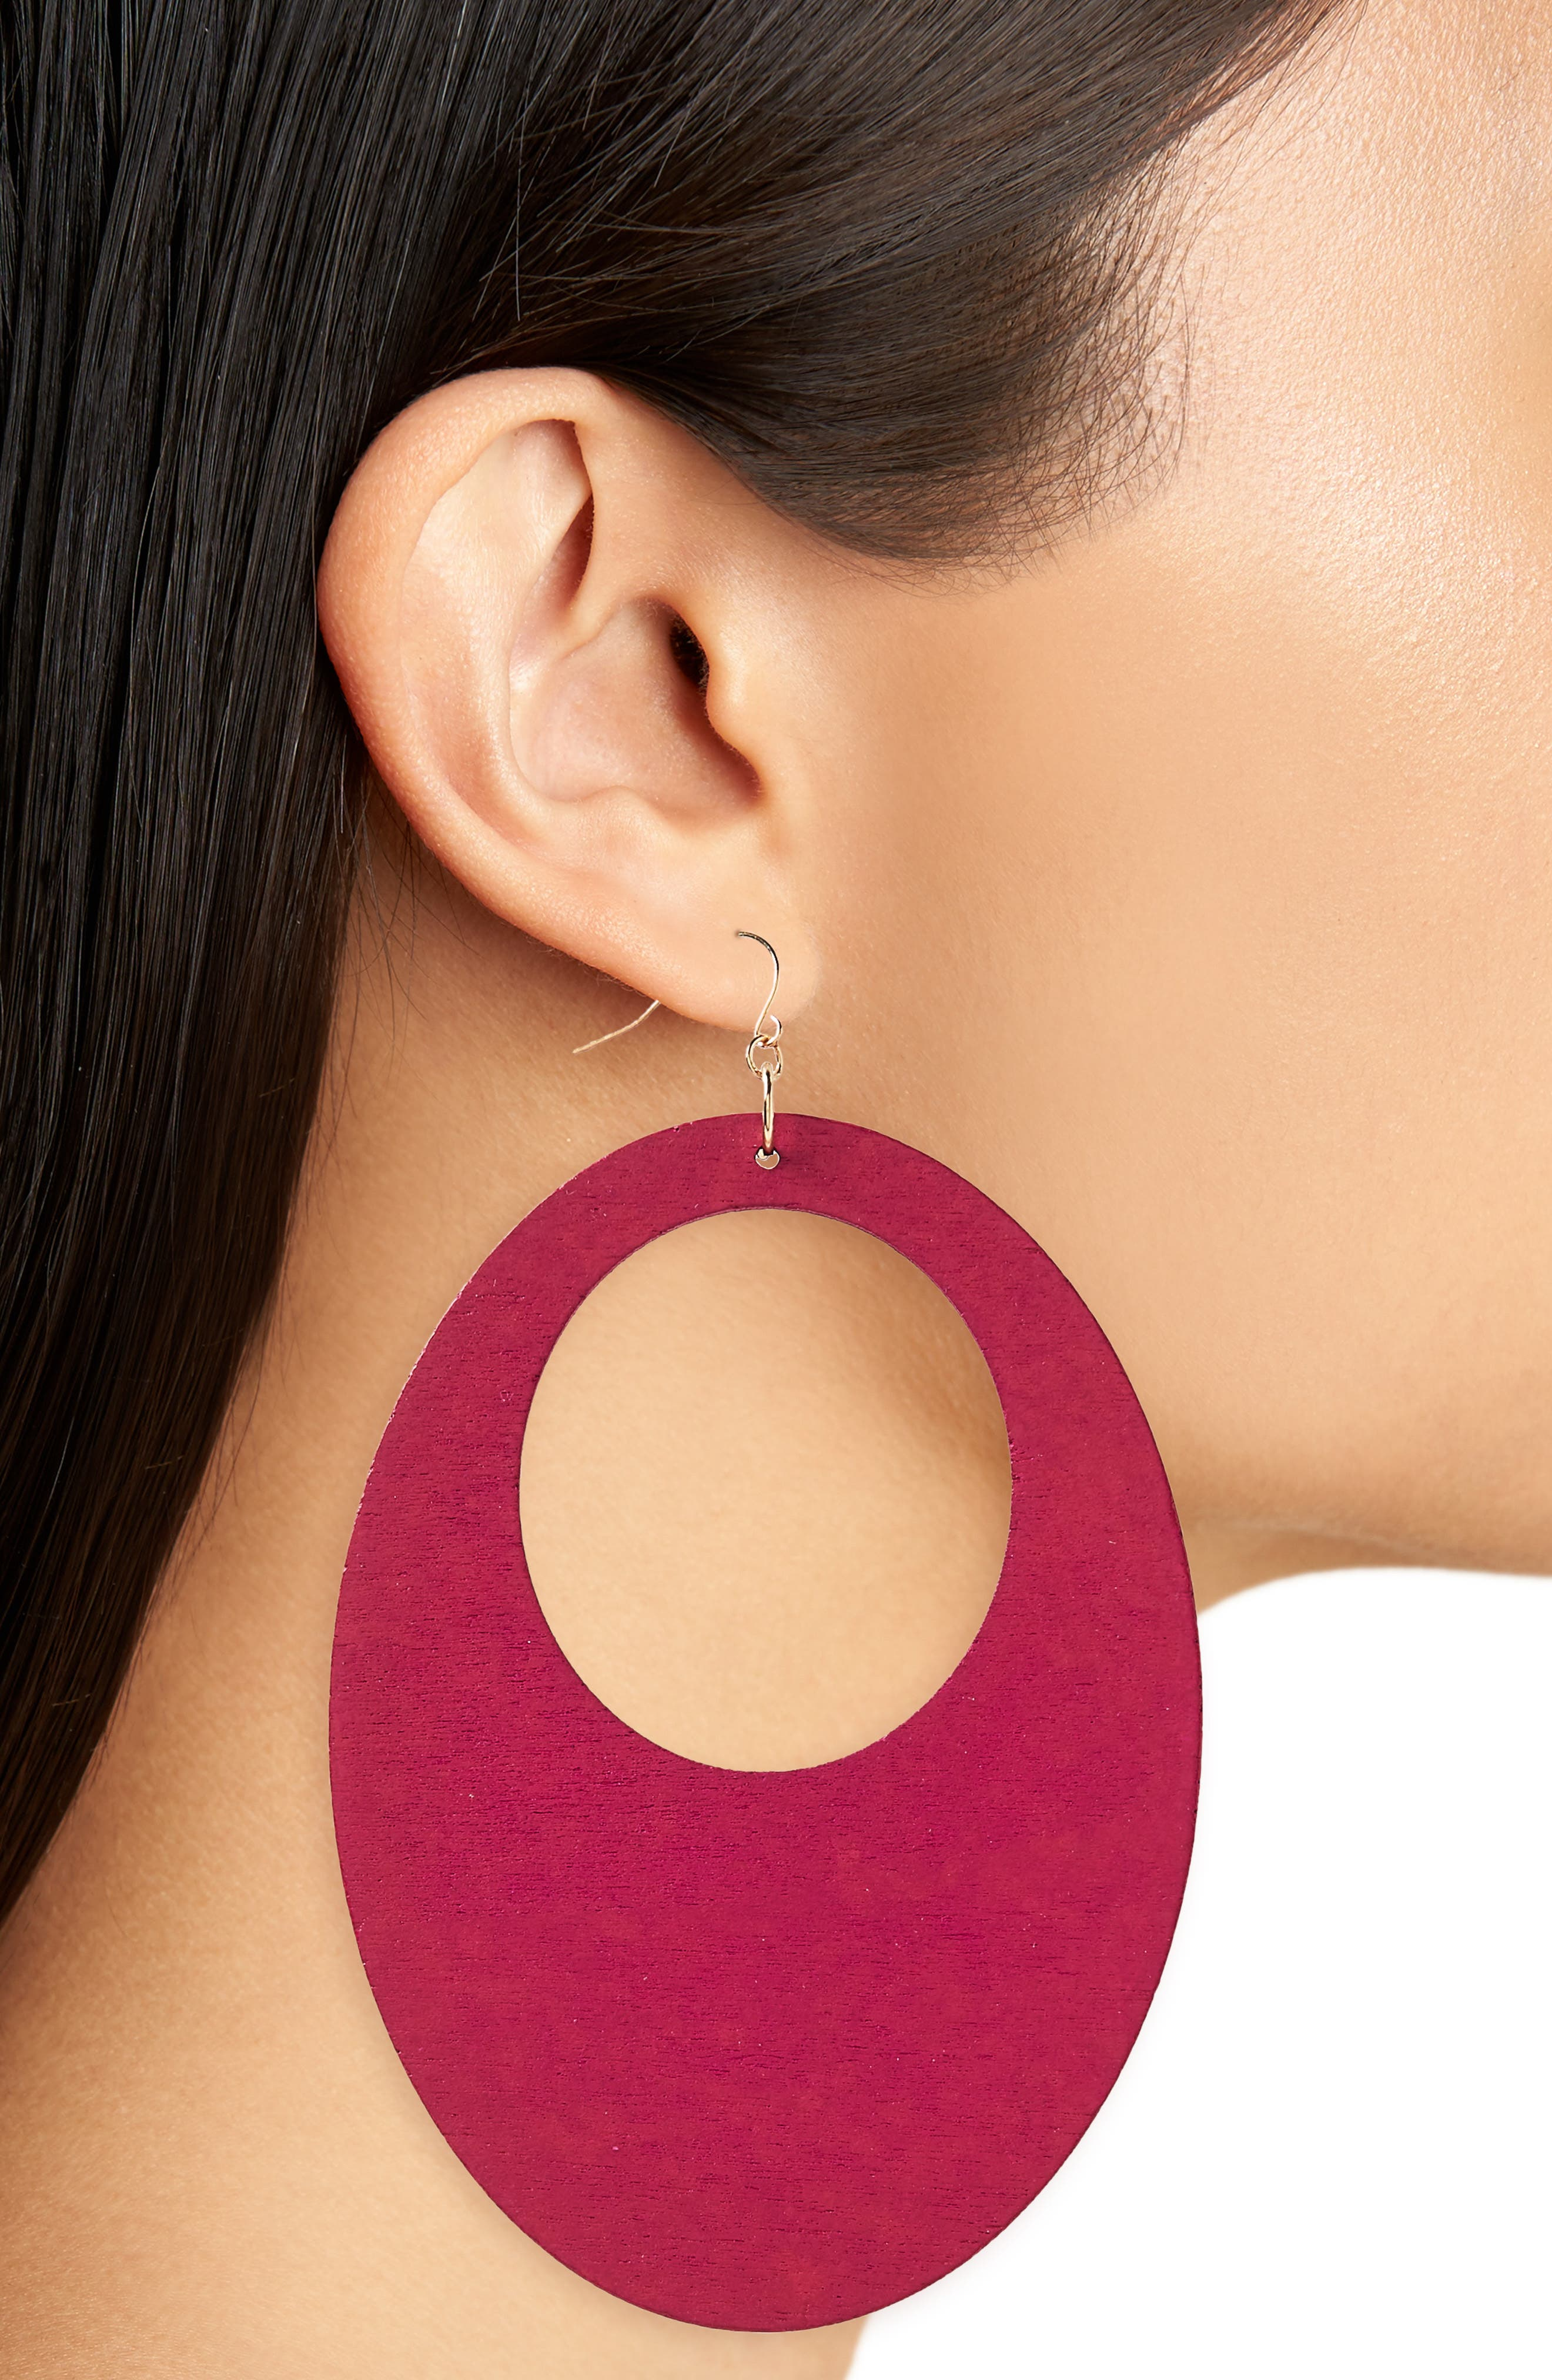 Couture Wood Earrings,                             Alternate thumbnail 2, color,                             Hot Pink